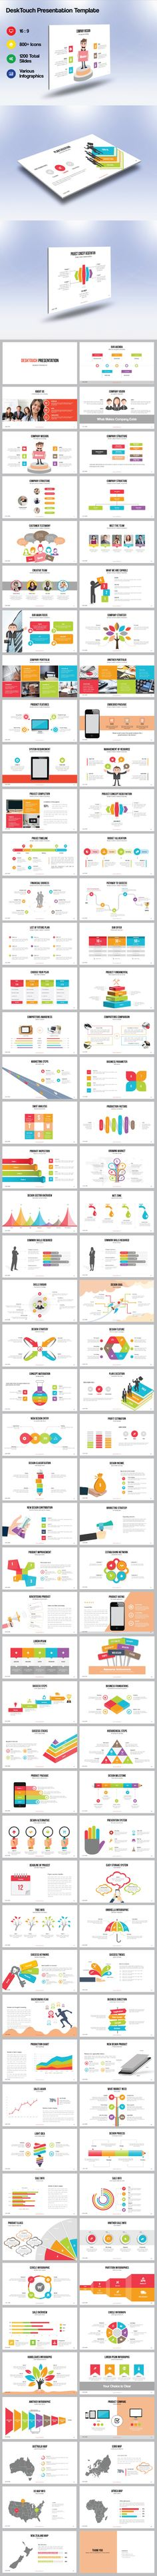 3 in 1 powerpoint presentation bundle 1 mockup and icons alramifo Image collections